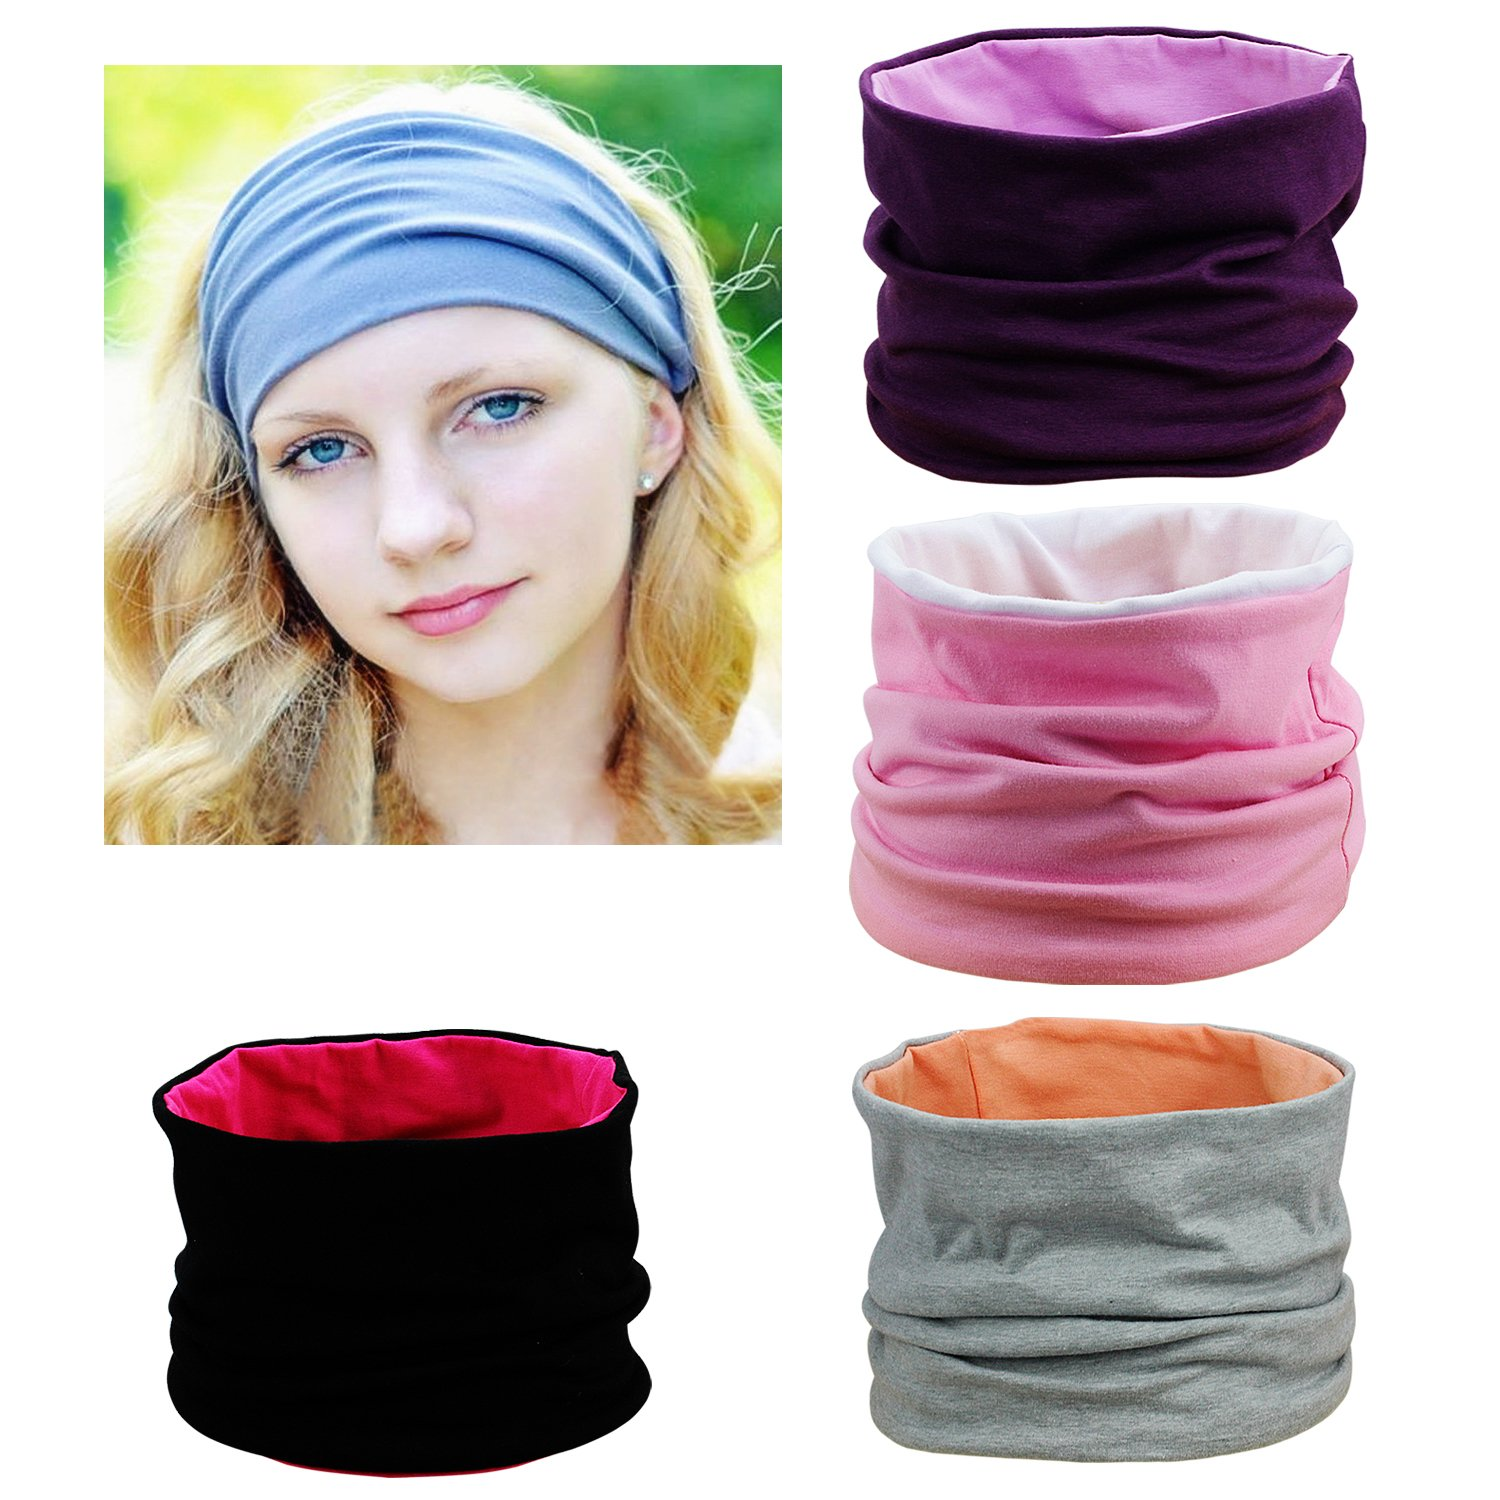 Amazon.com   Habibee 4 Packs Wide Fashion Cotton Headbands for Women  Breathable Moisture Wicking Sport Head Wraps Scarf for Workout Yoga Running    Beauty 63767420ac7